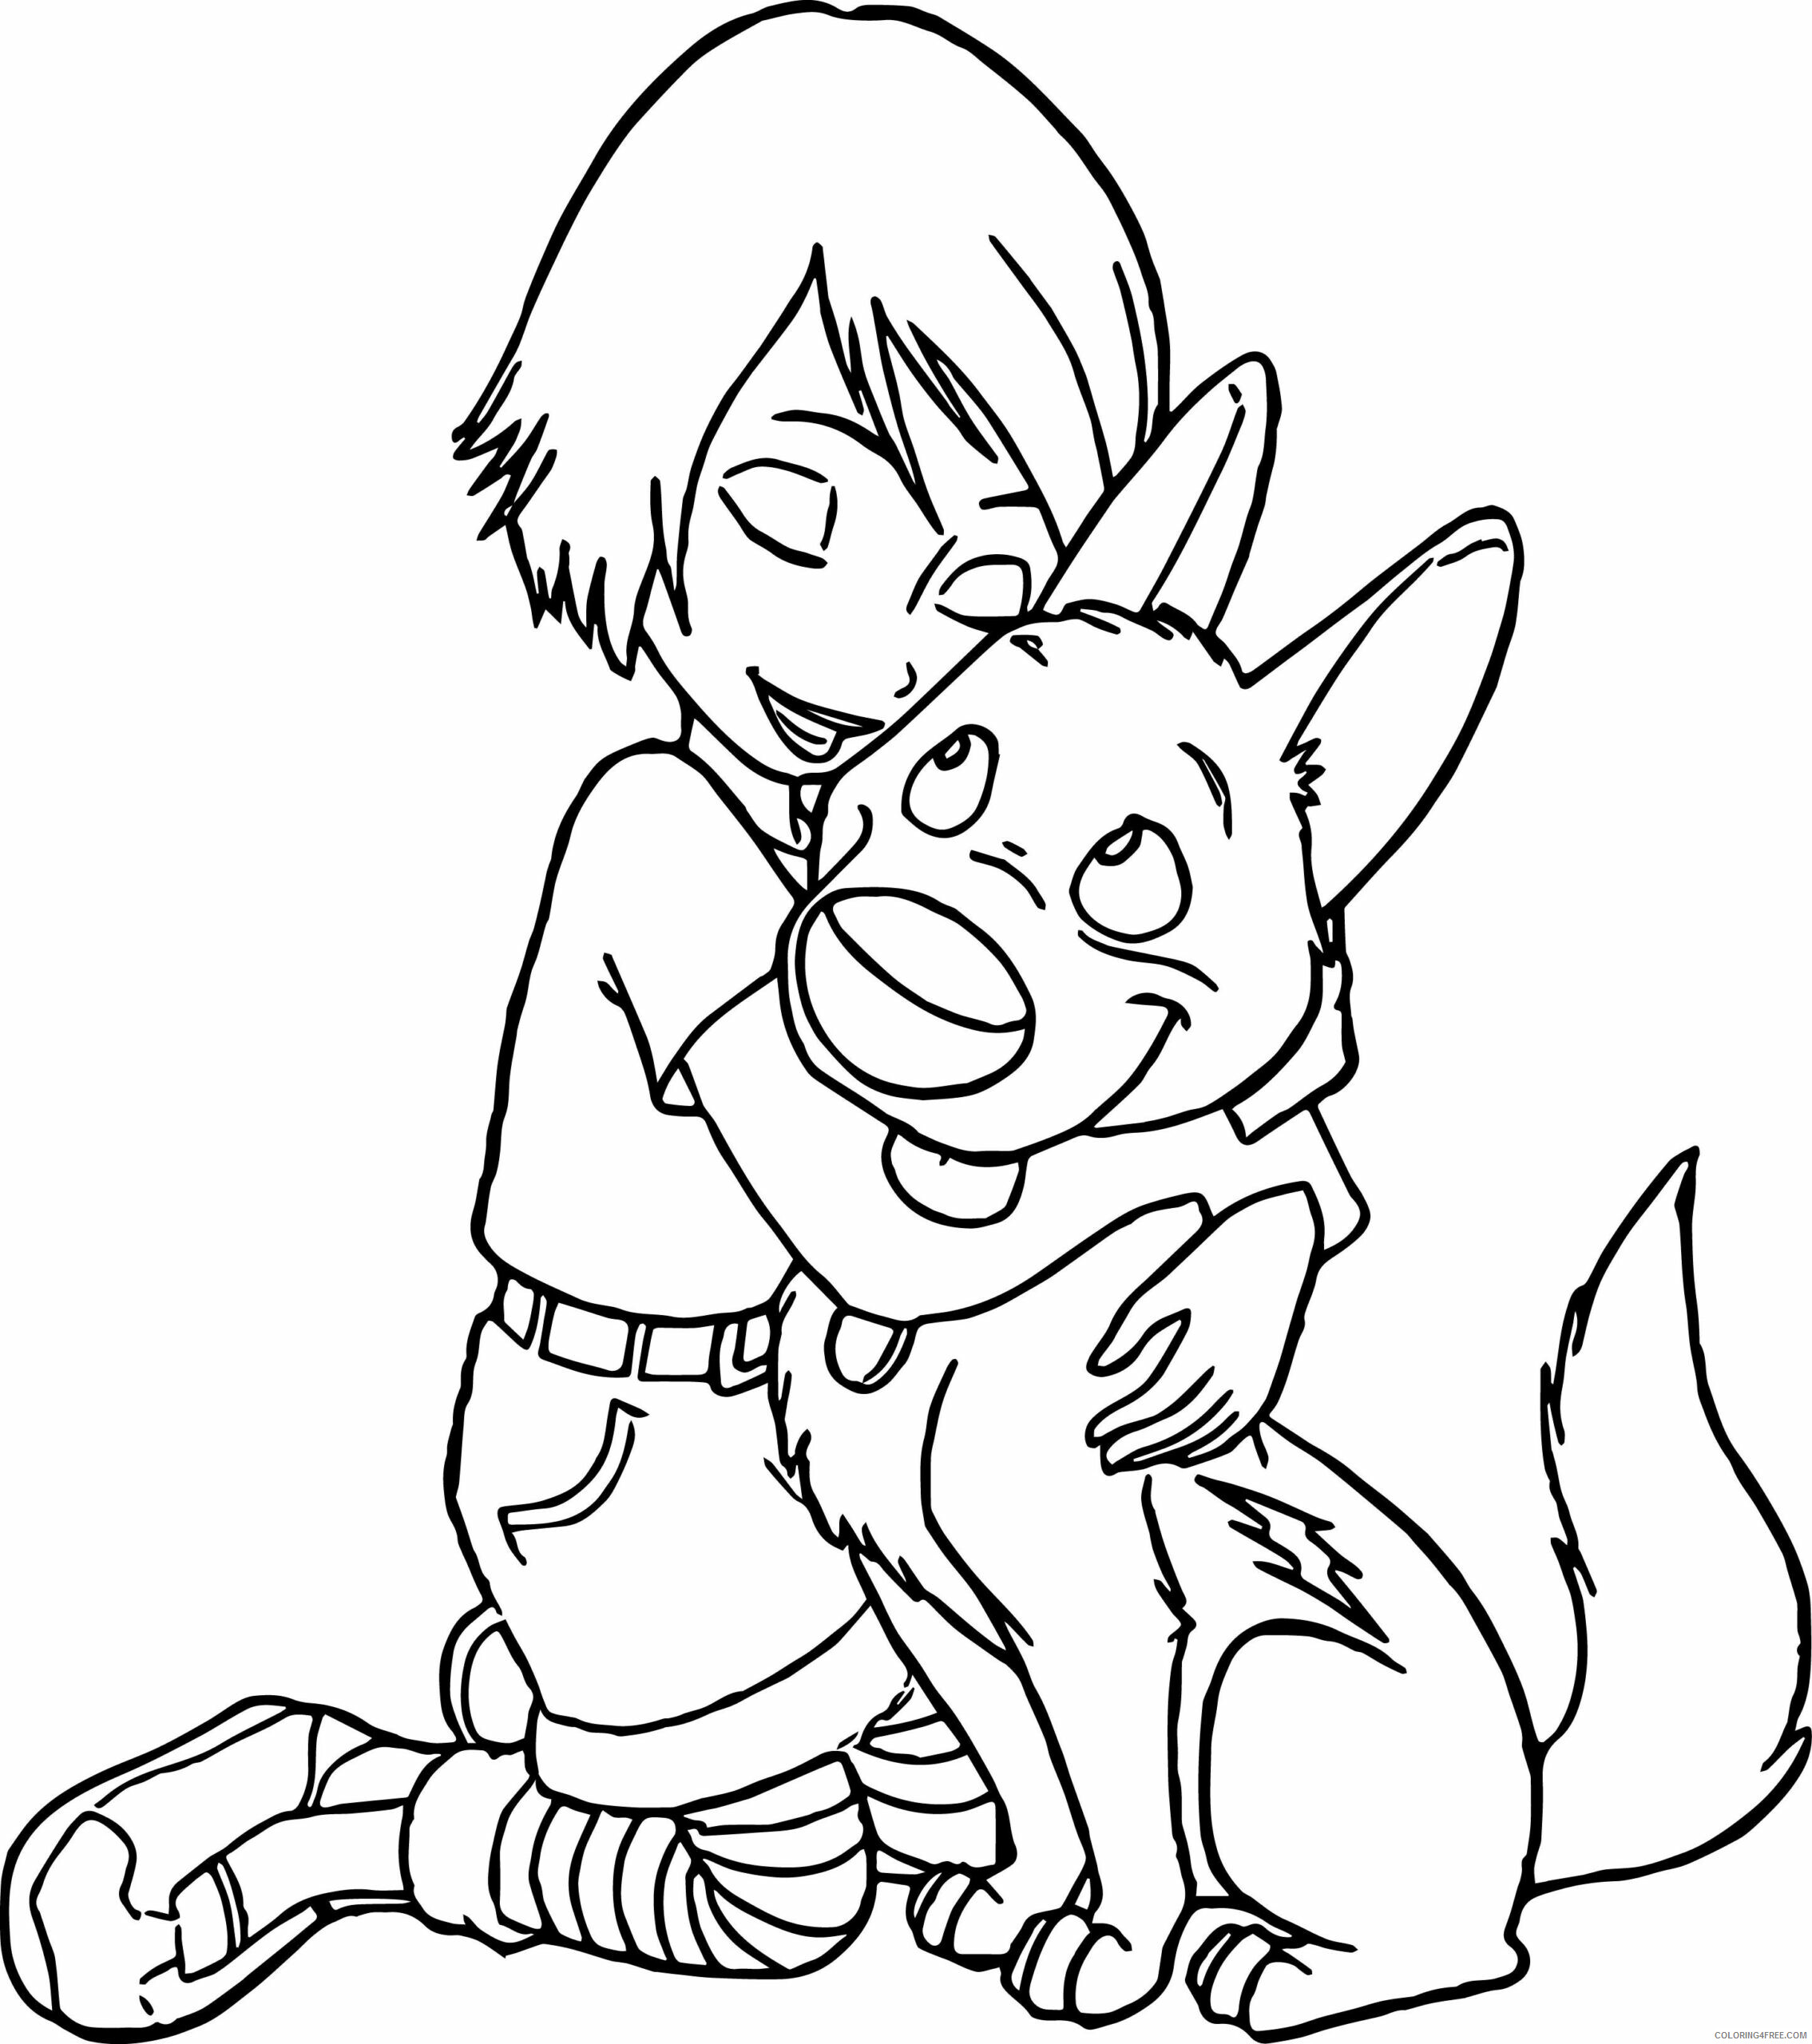 Bolt Coloring Pages TV Film Penny and Bolt Printable 2020 01246 Coloring4free